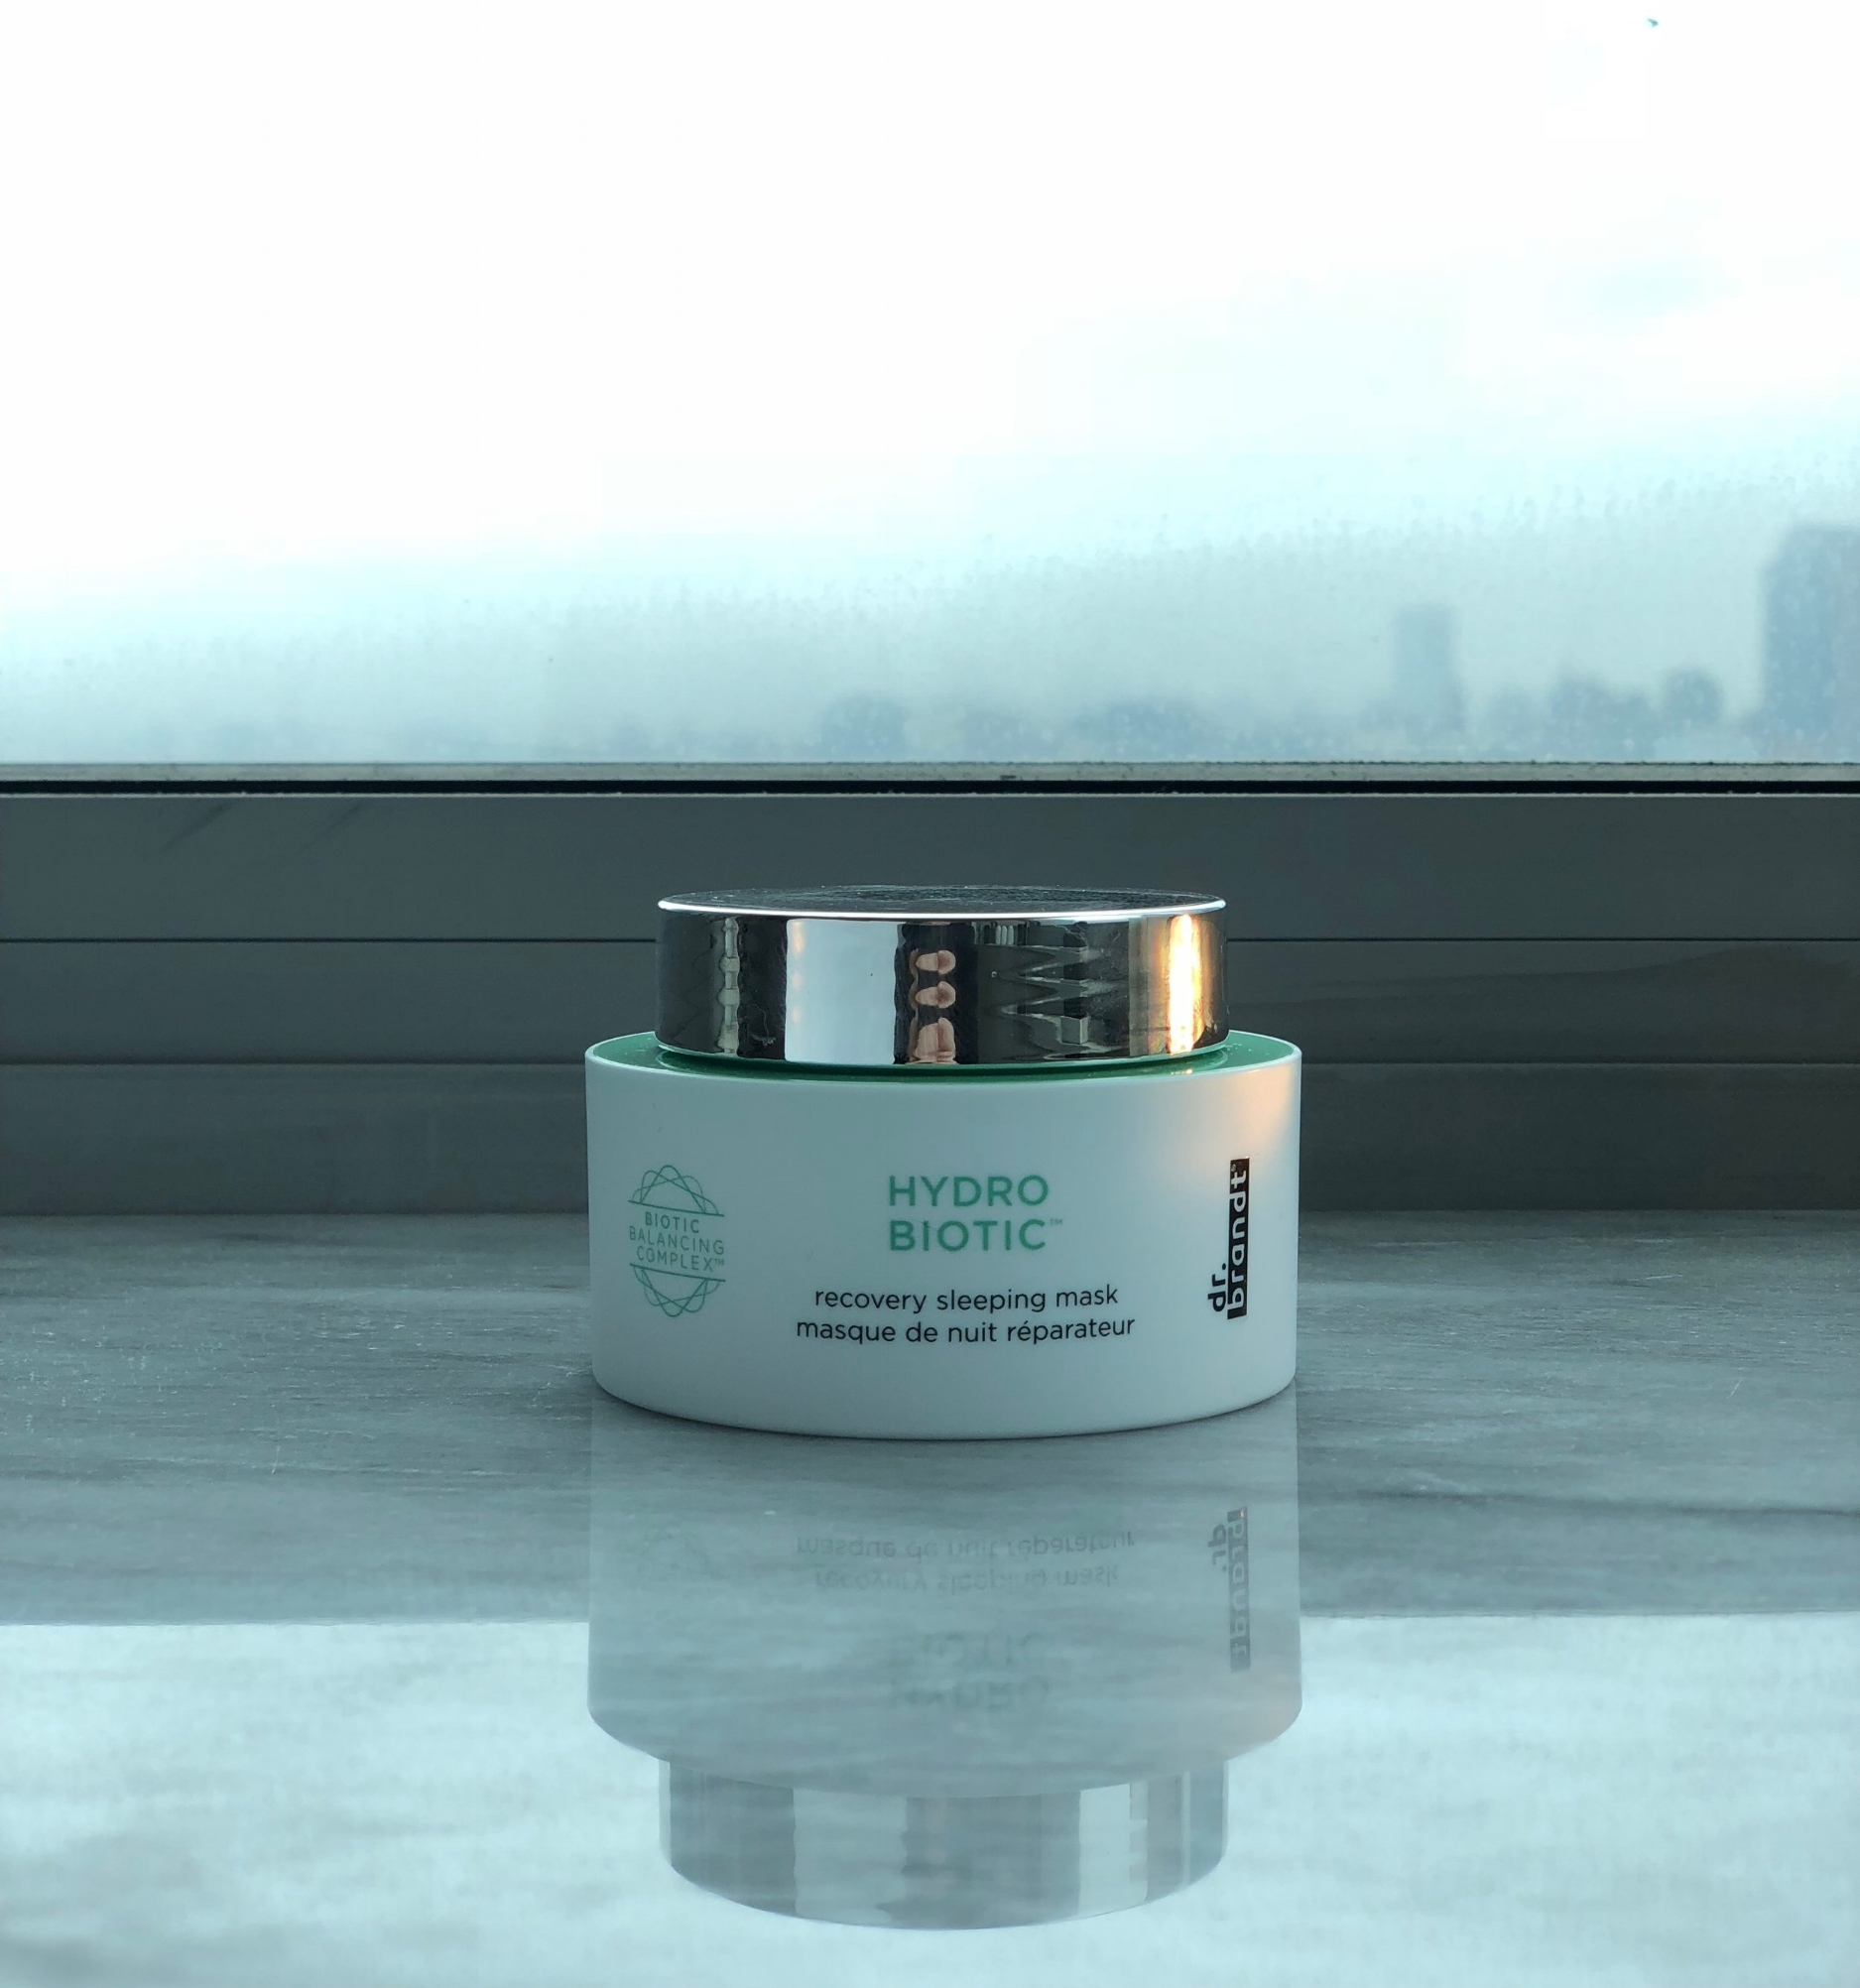 The new Dr. Brandt Hydro Biotic recovery sleeping mask is a great way to incorporate healthy probiotics into your skincare regimen.